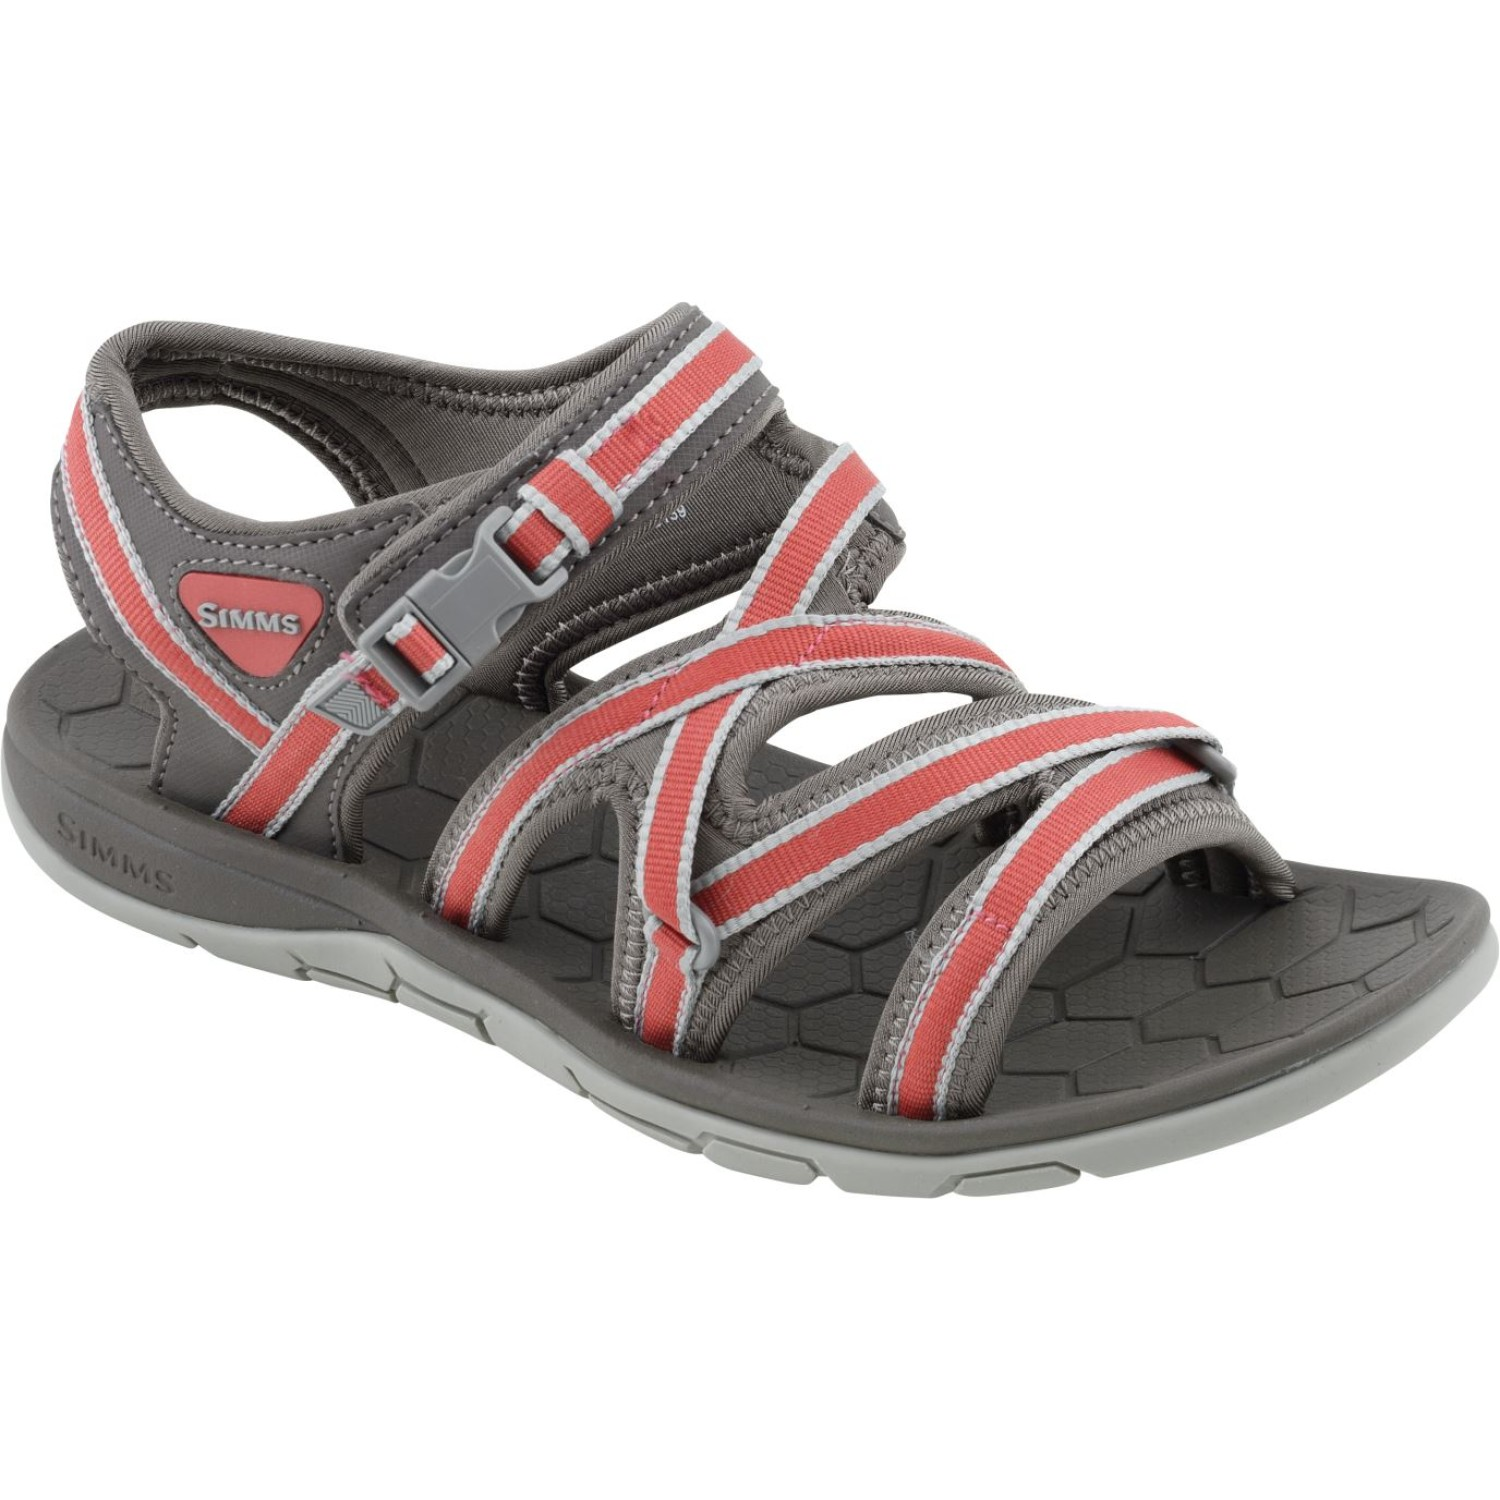 Simms Women's Clearwater Sandal Blossom